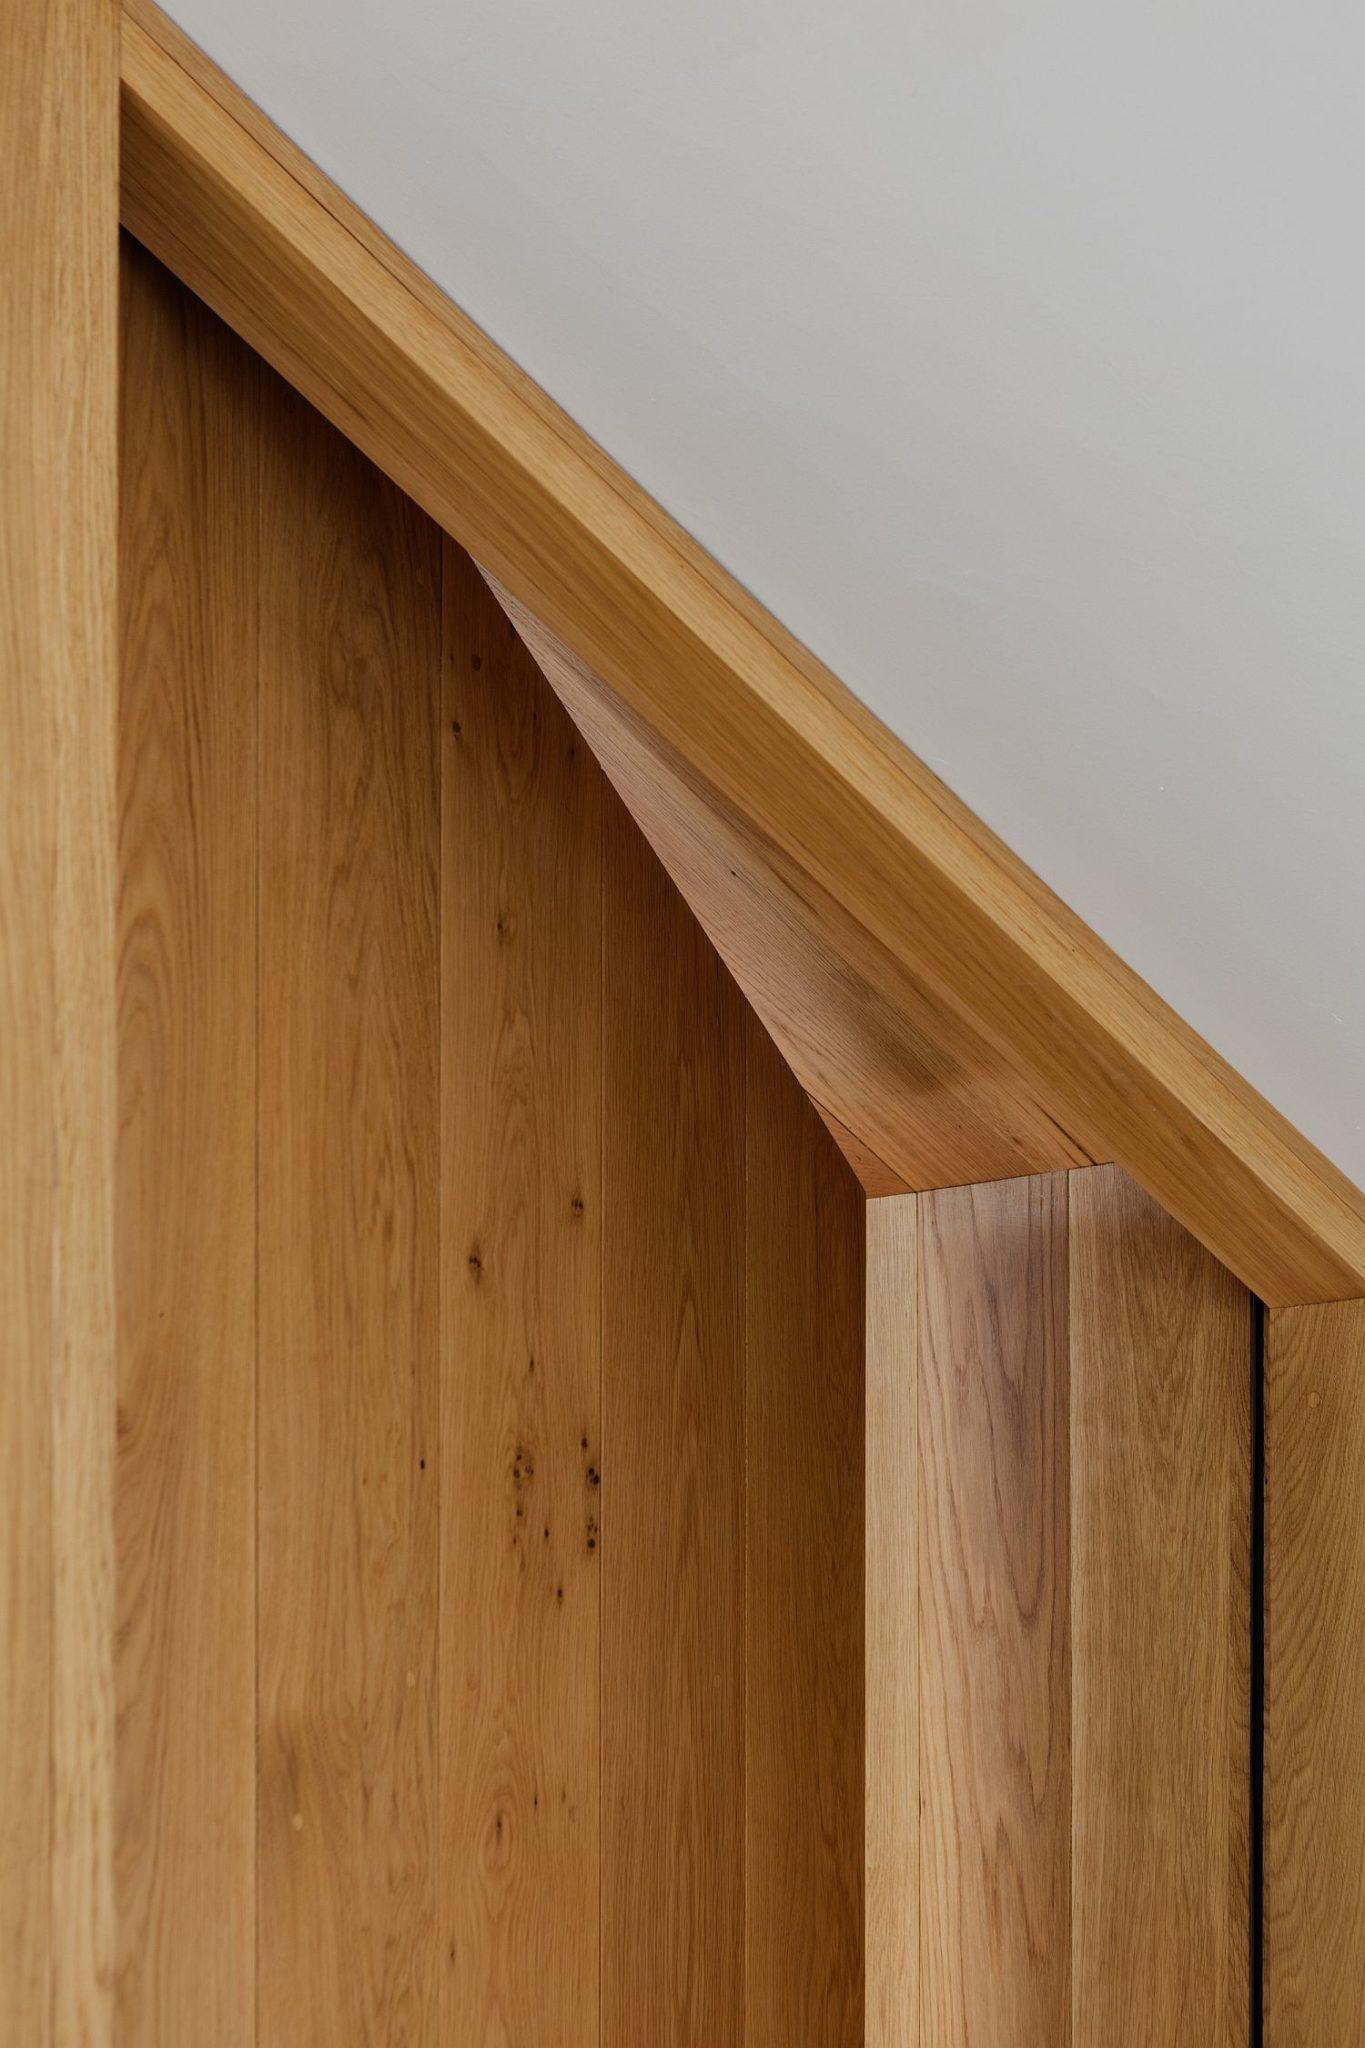 Closer look at the wood used for the contemporary extension